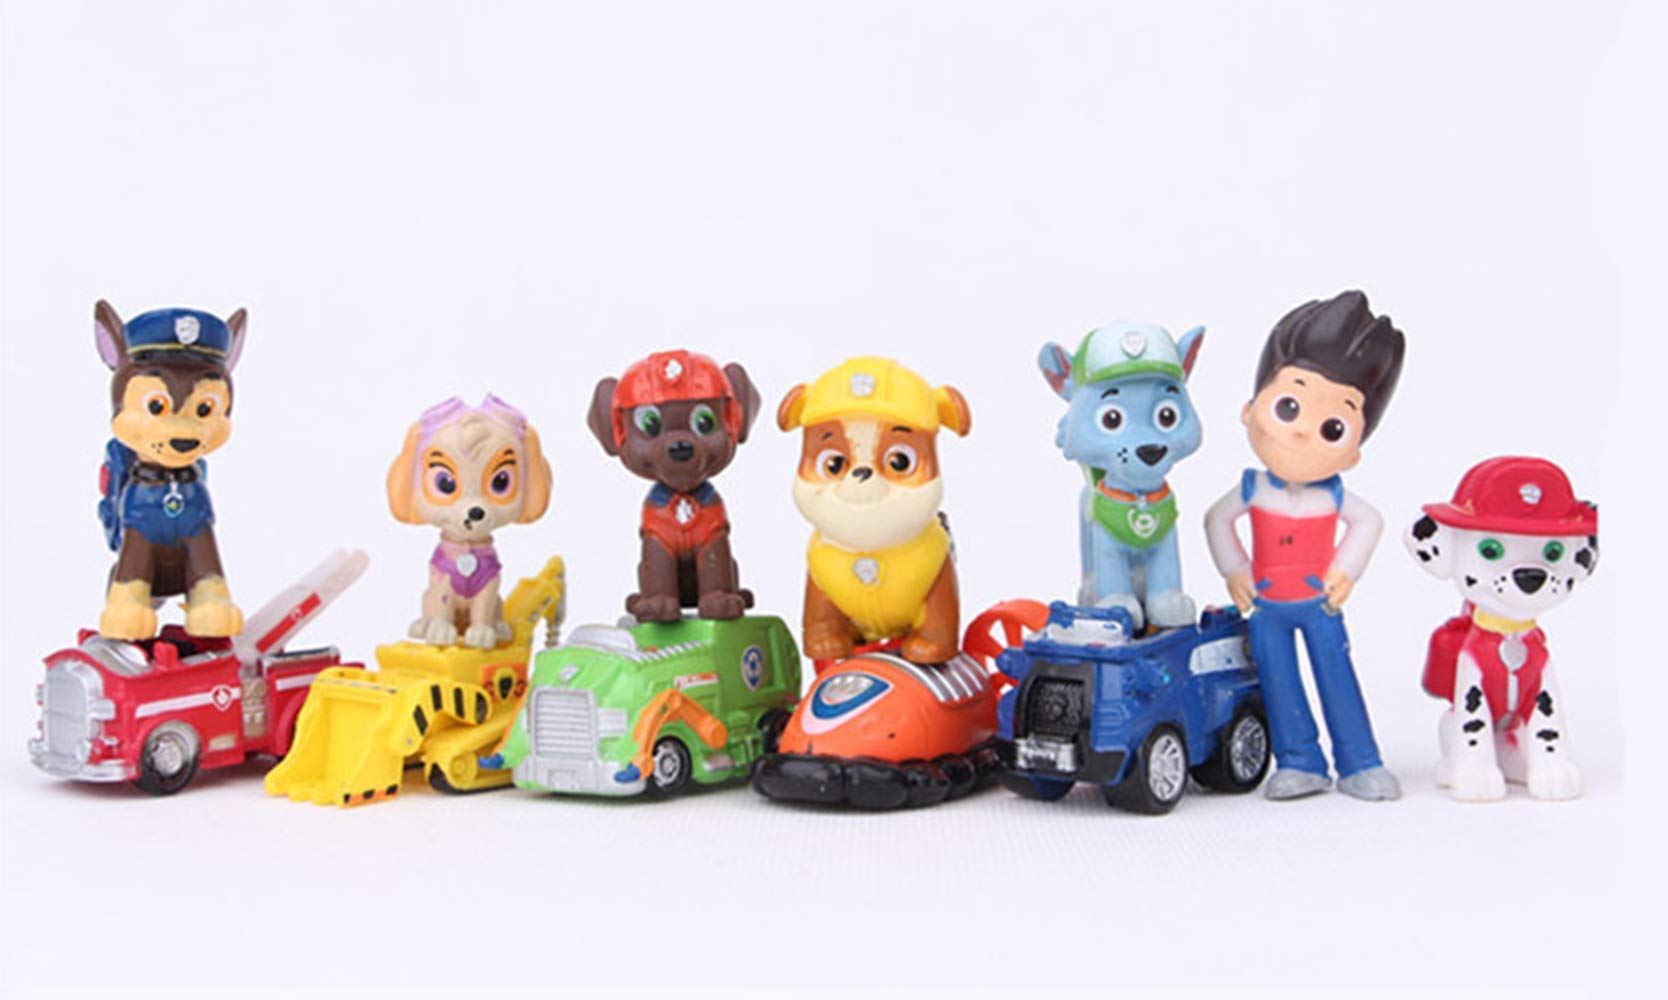 12PCS paw patrol cake ingredients, cake and cupcake decorations, paw patrol mini toys, children's birthday shower party suppli by ZCRR (Image #3)